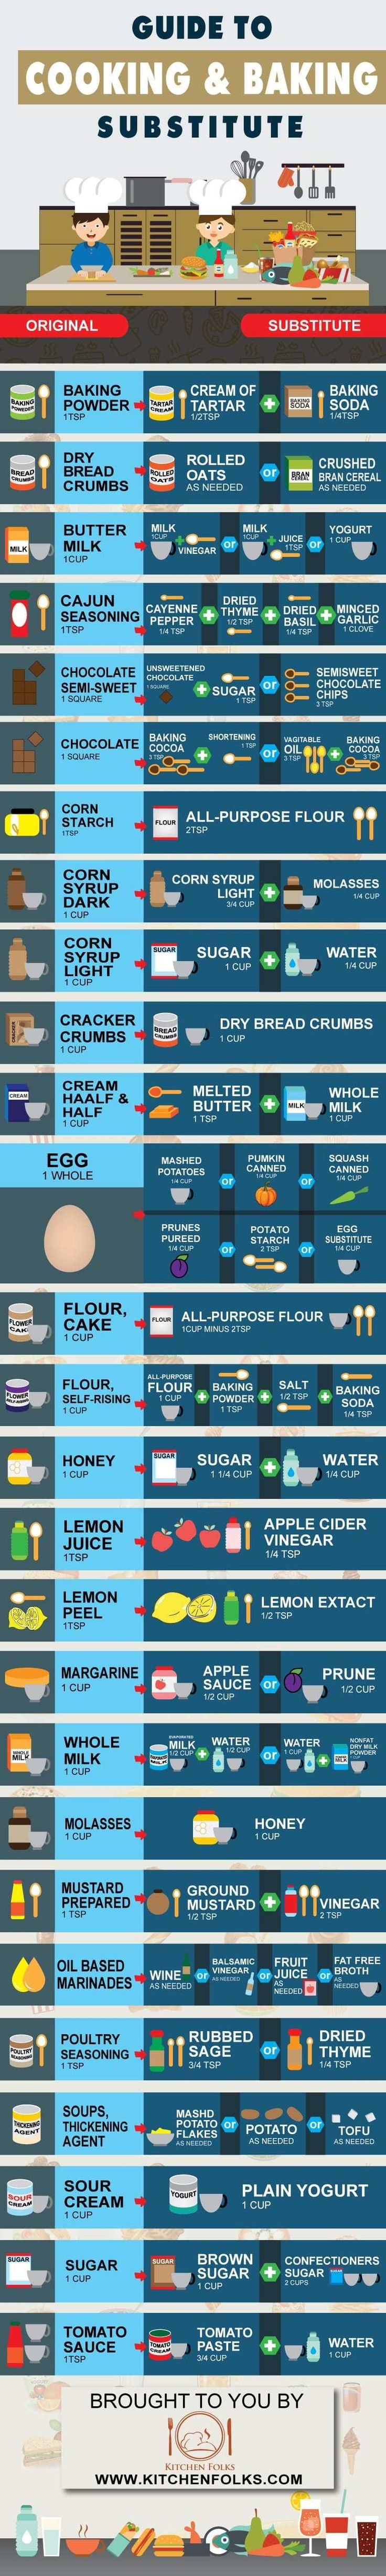 305 best Food & Drink Infographics images on Pinterest | Brewing ...